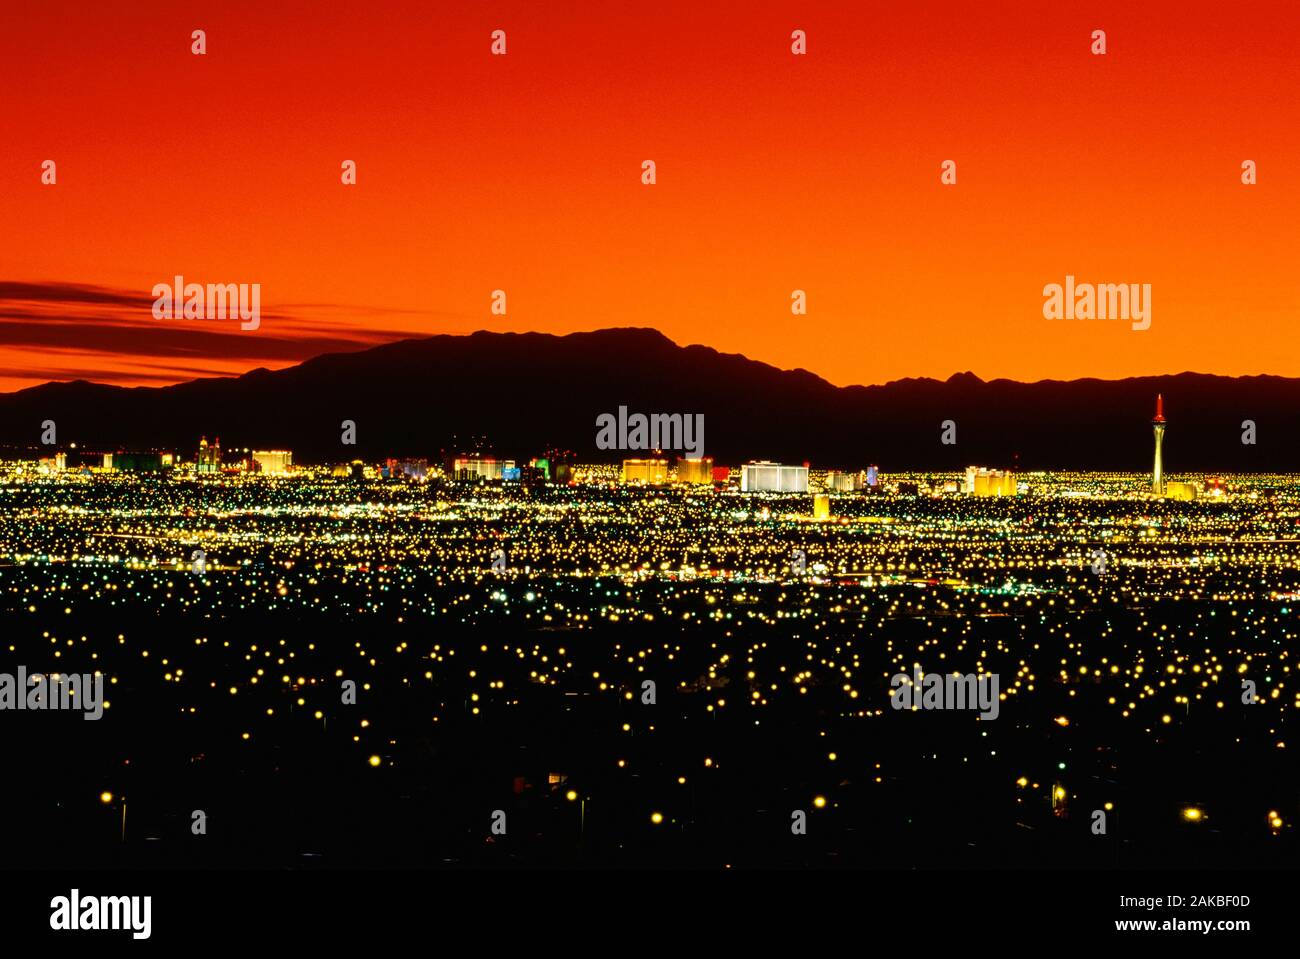 Cityscape at night, Las Vegas, Nevada, USA Banque D'Images